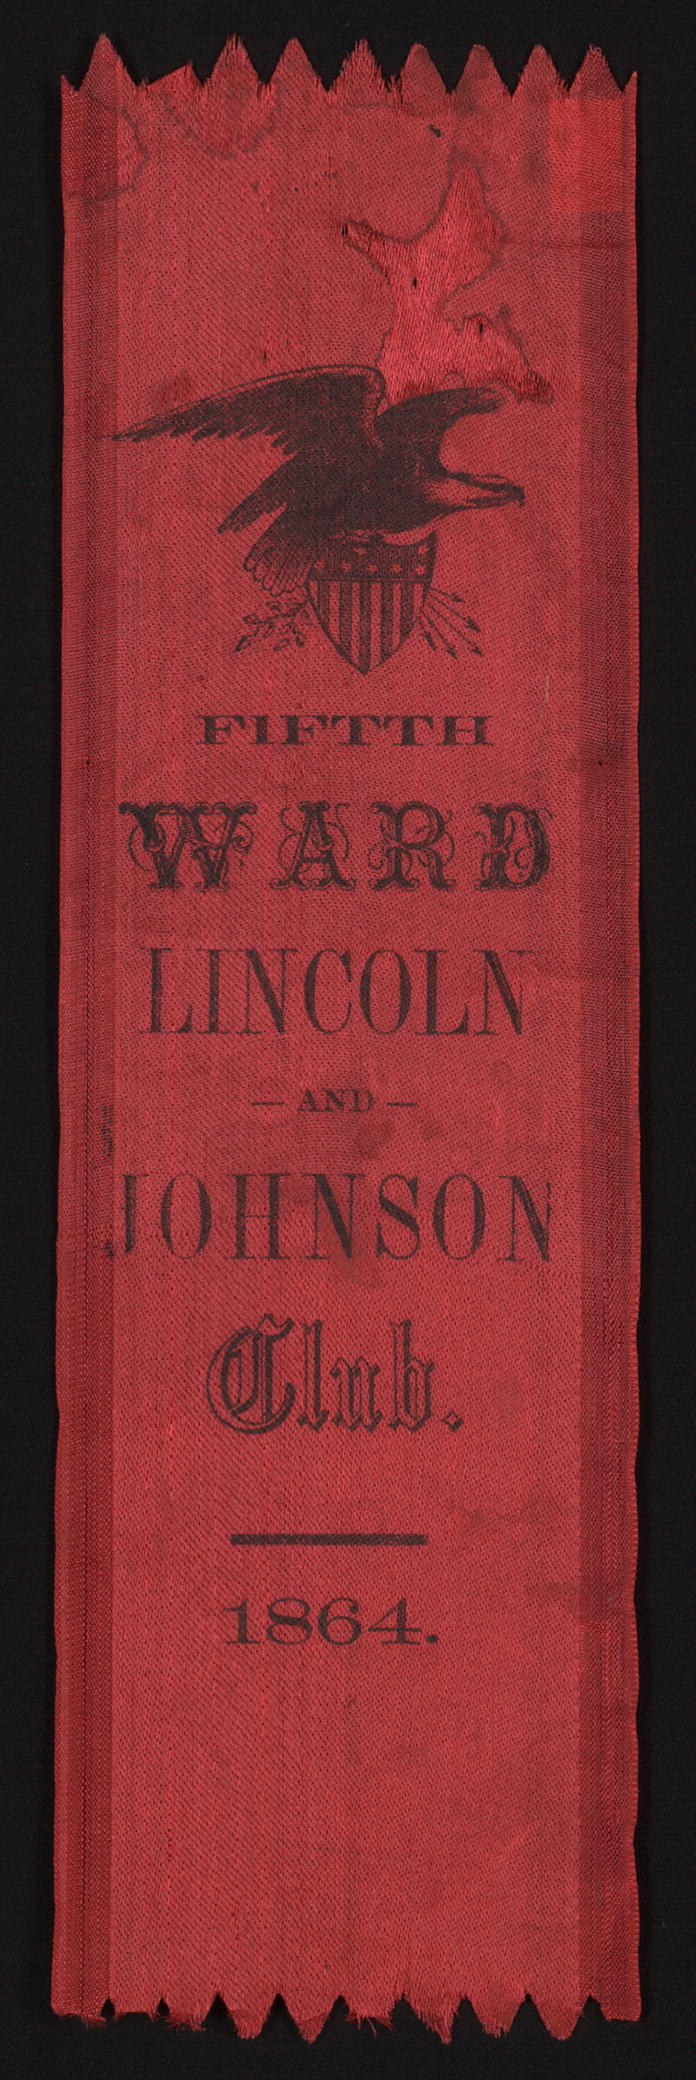 Fifth Ward Lincoln and Johnson Club | Circa 1864